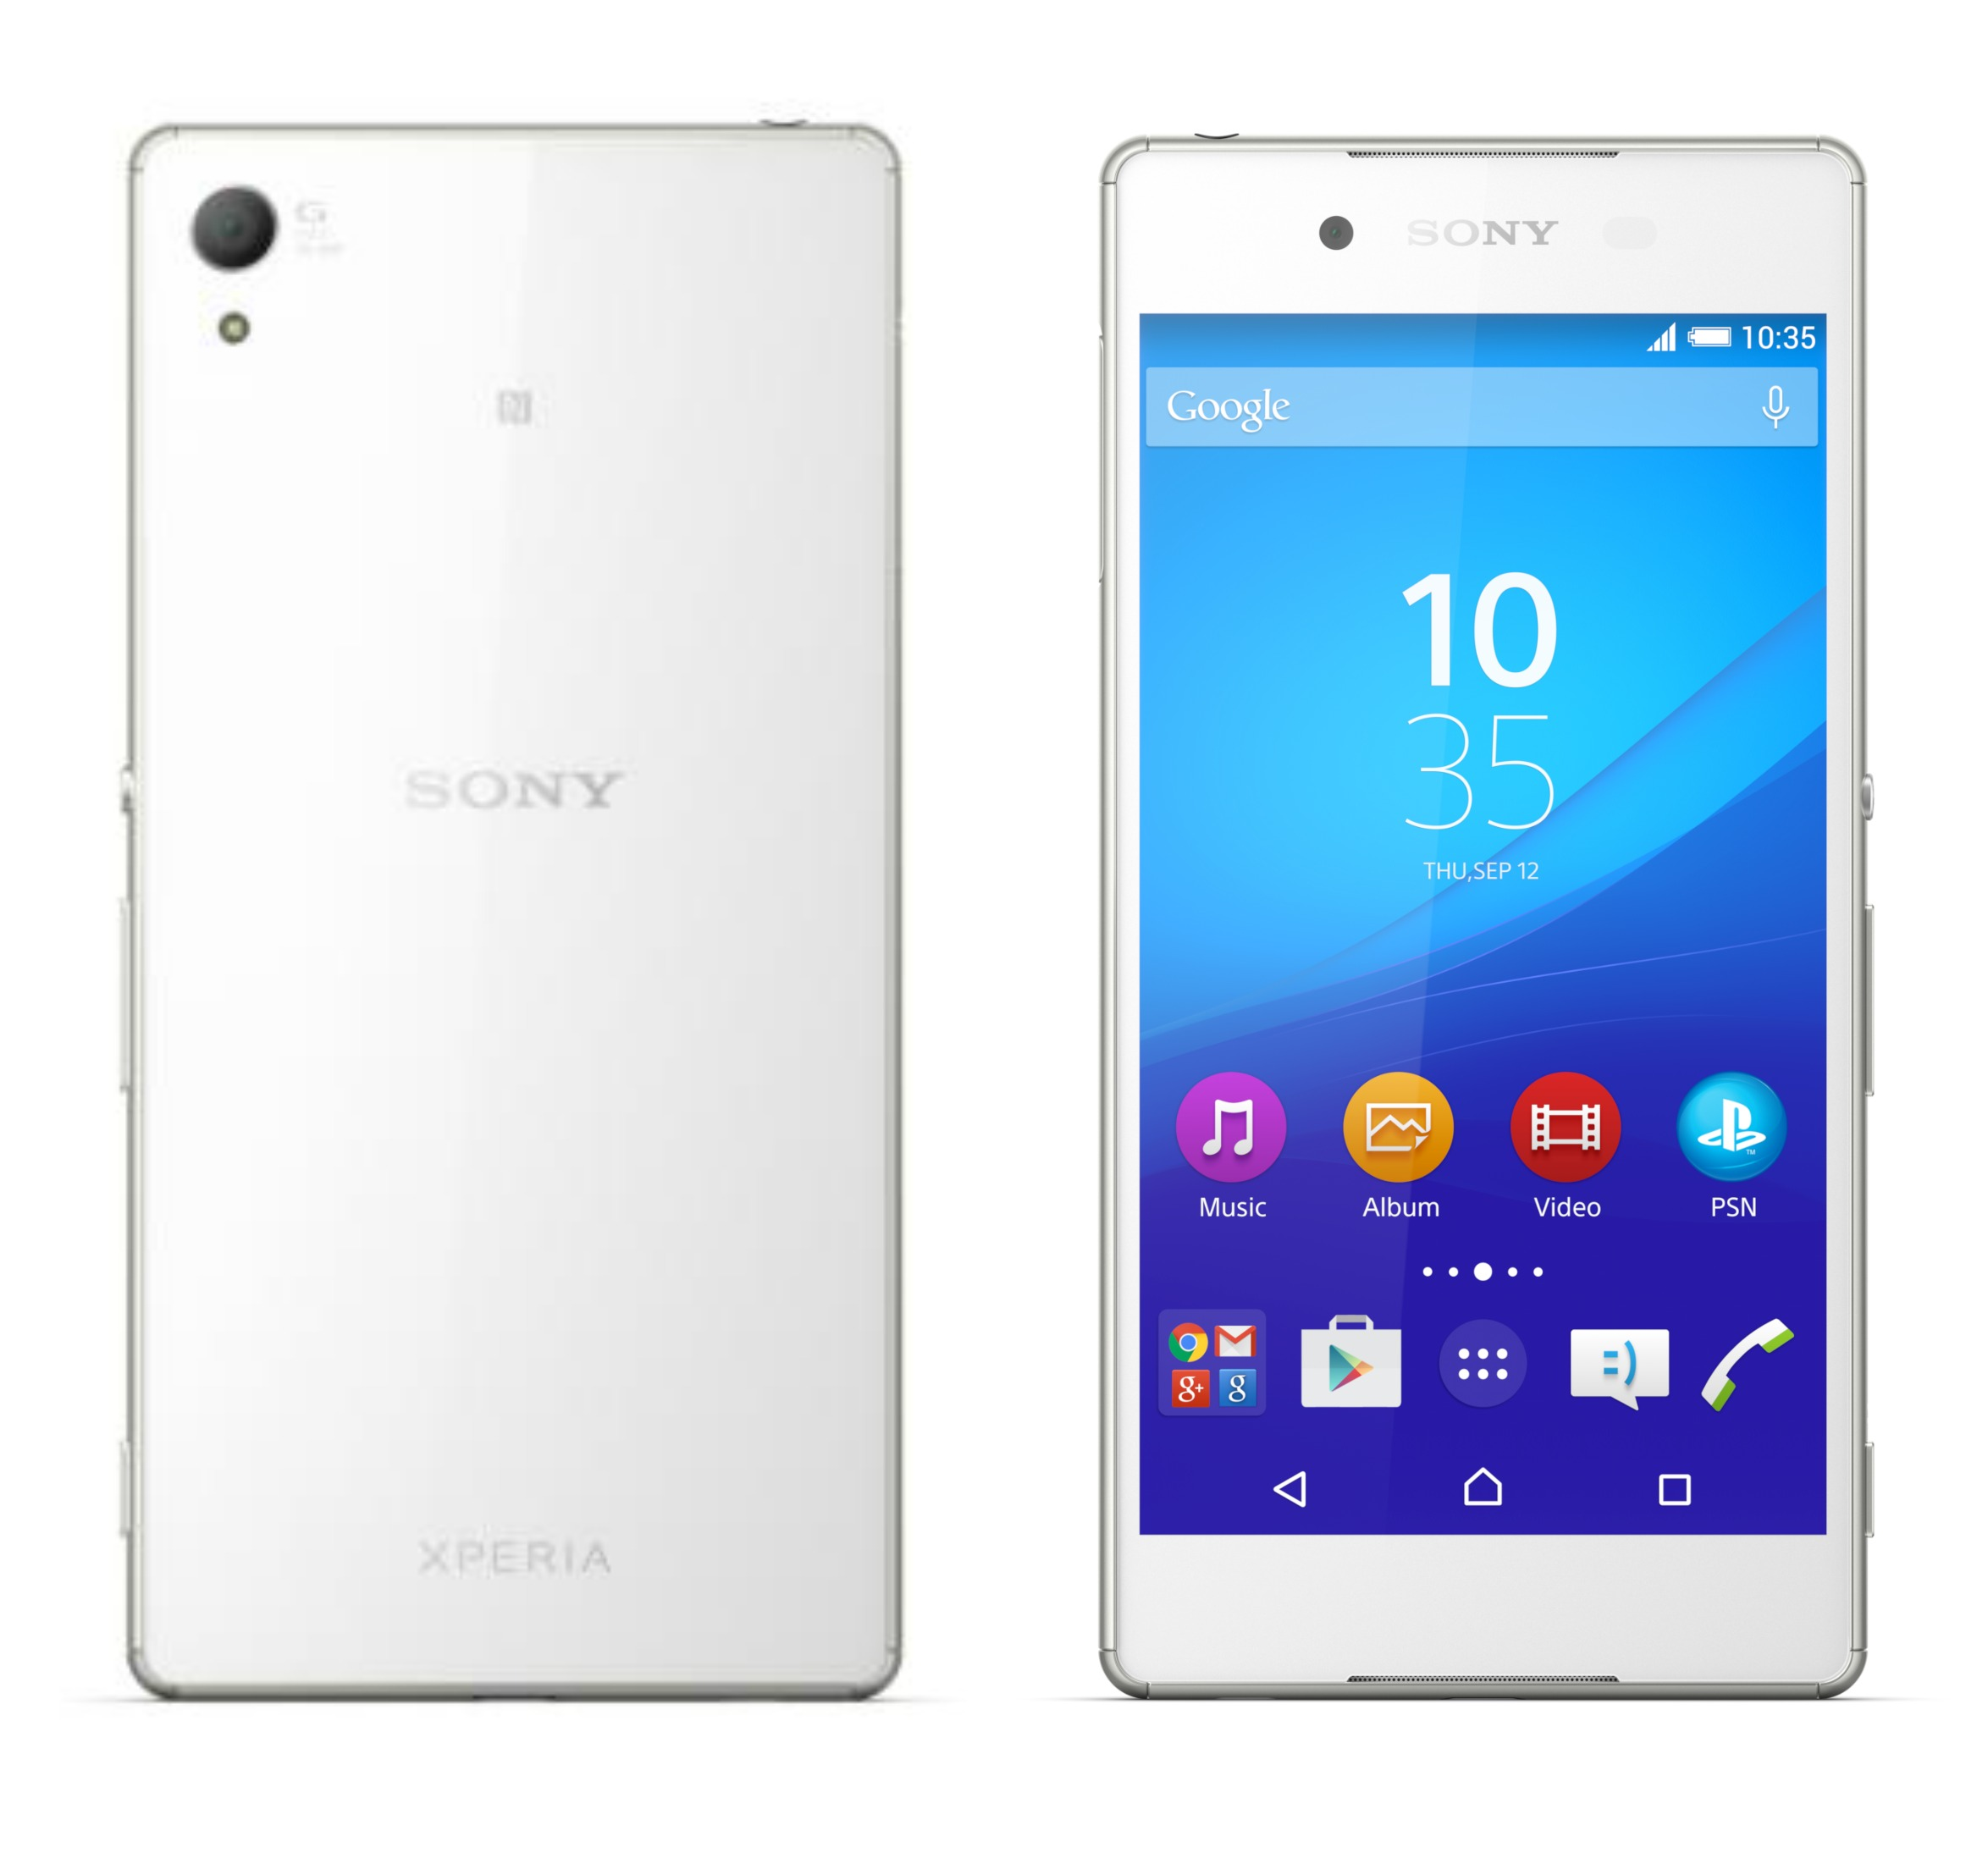 Sony has officially unveiled the Xperia Z4